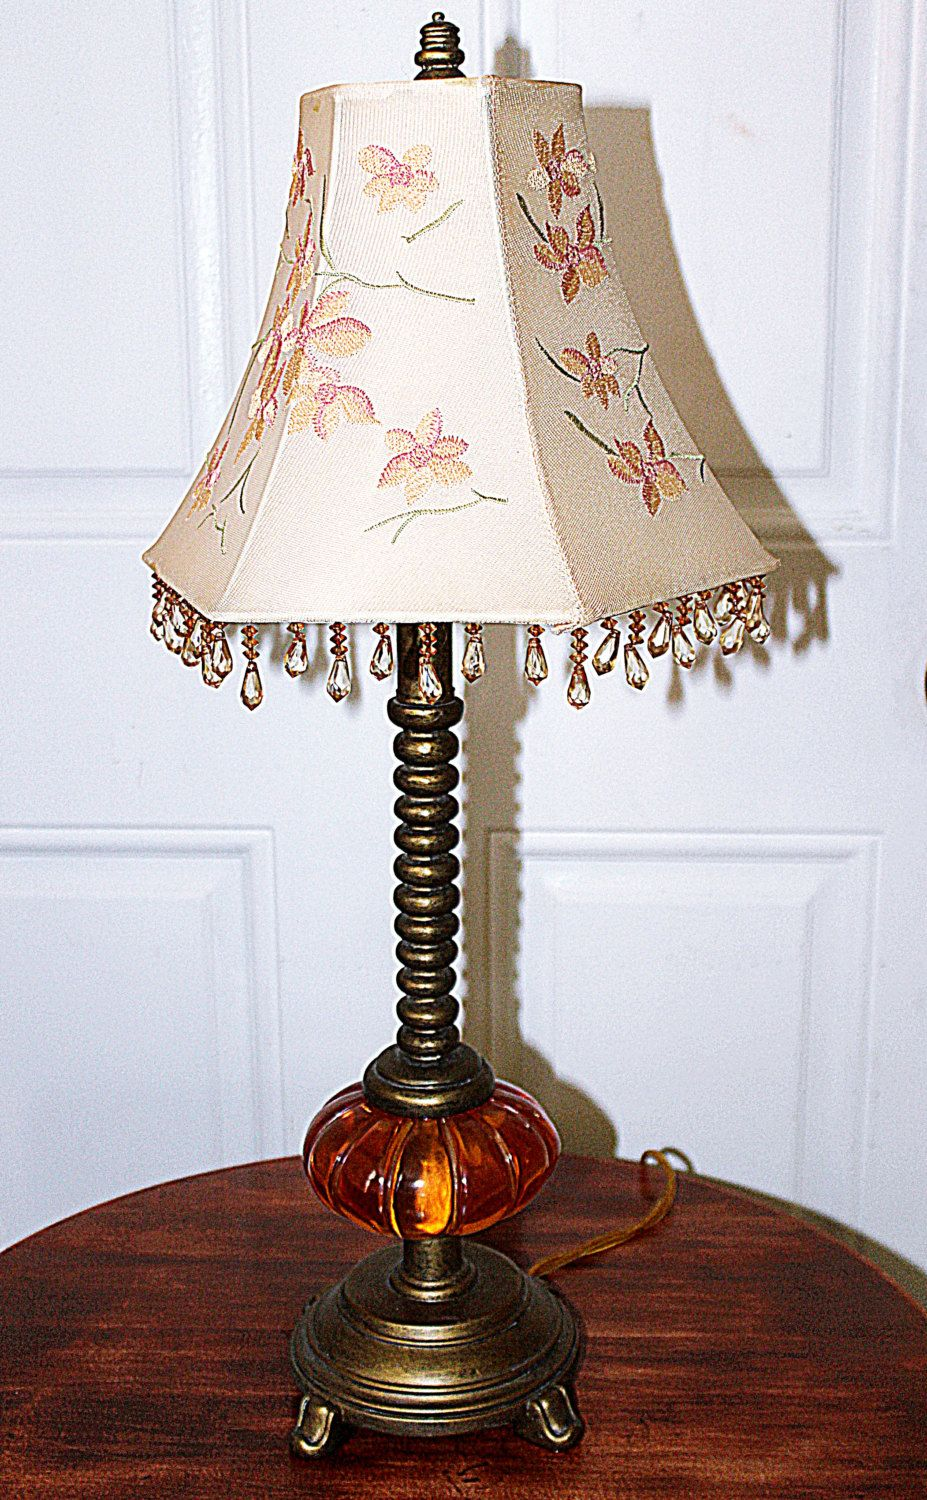 vintage glass base accent table lamp beautiful embroidered lamps shade spiral shaft standard bulb watt max very pretty queenieseclectic homebase outdoor furniture long bar and